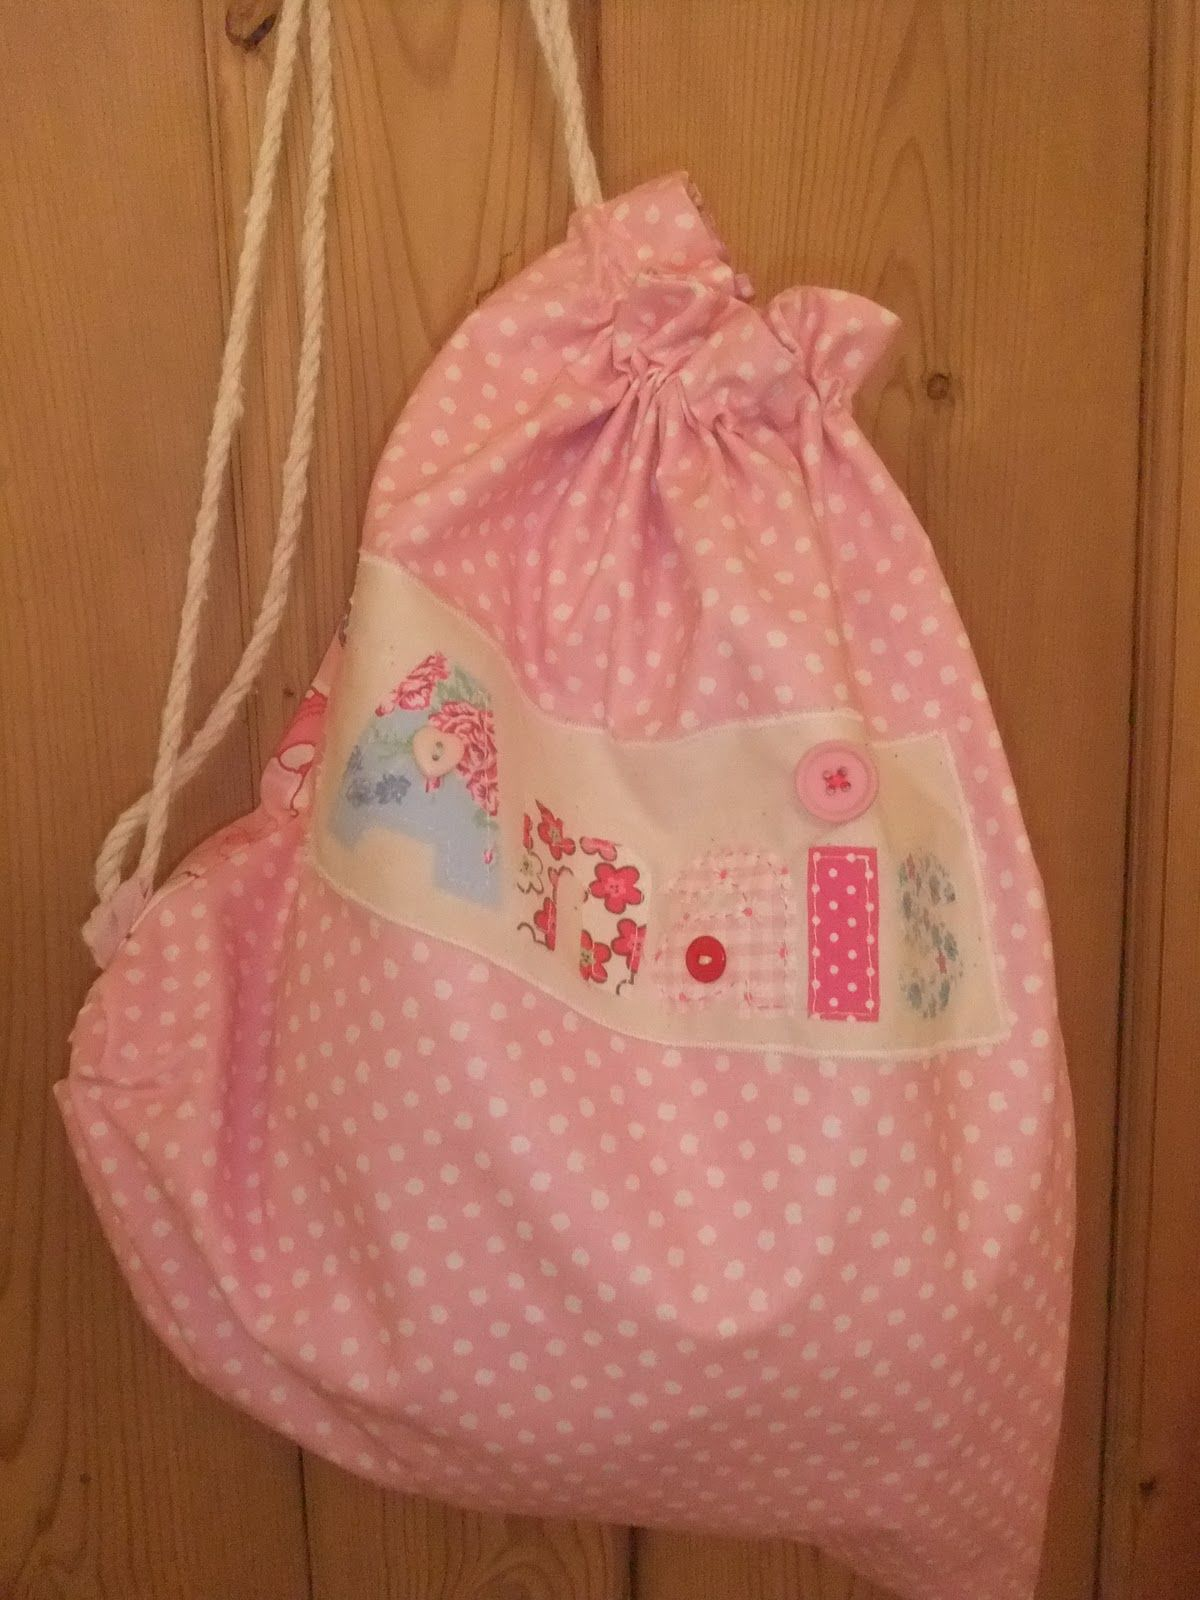 5b4f2b407b Lined PE Bag Tutorial. Cute little bag for a child. She even appliques  their name on it. Complete How-to in link.